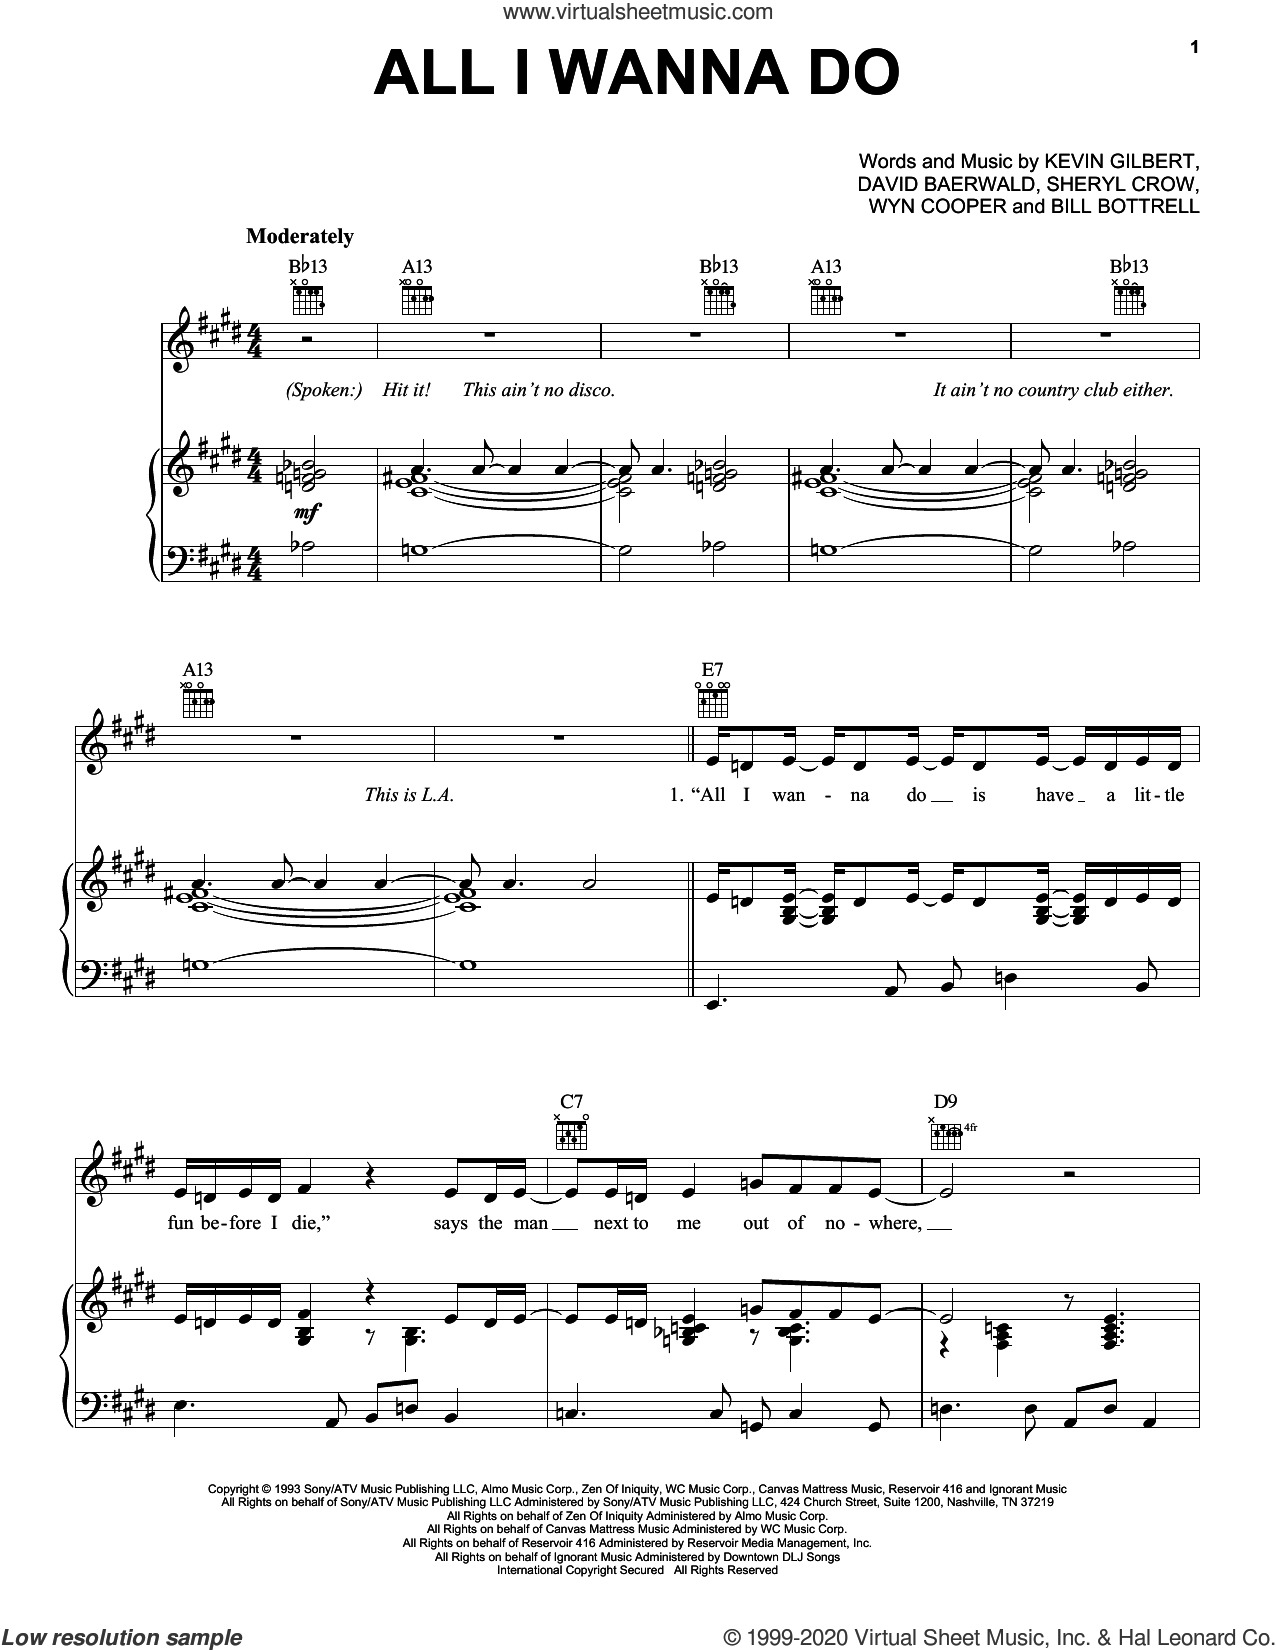 All I Wanna Do sheet music for voice, piano or guitar by Sheryl Crow, Bill Bottrell, David Baerwald, Kevin Gilbert and Wyn Cooper, intermediate skill level